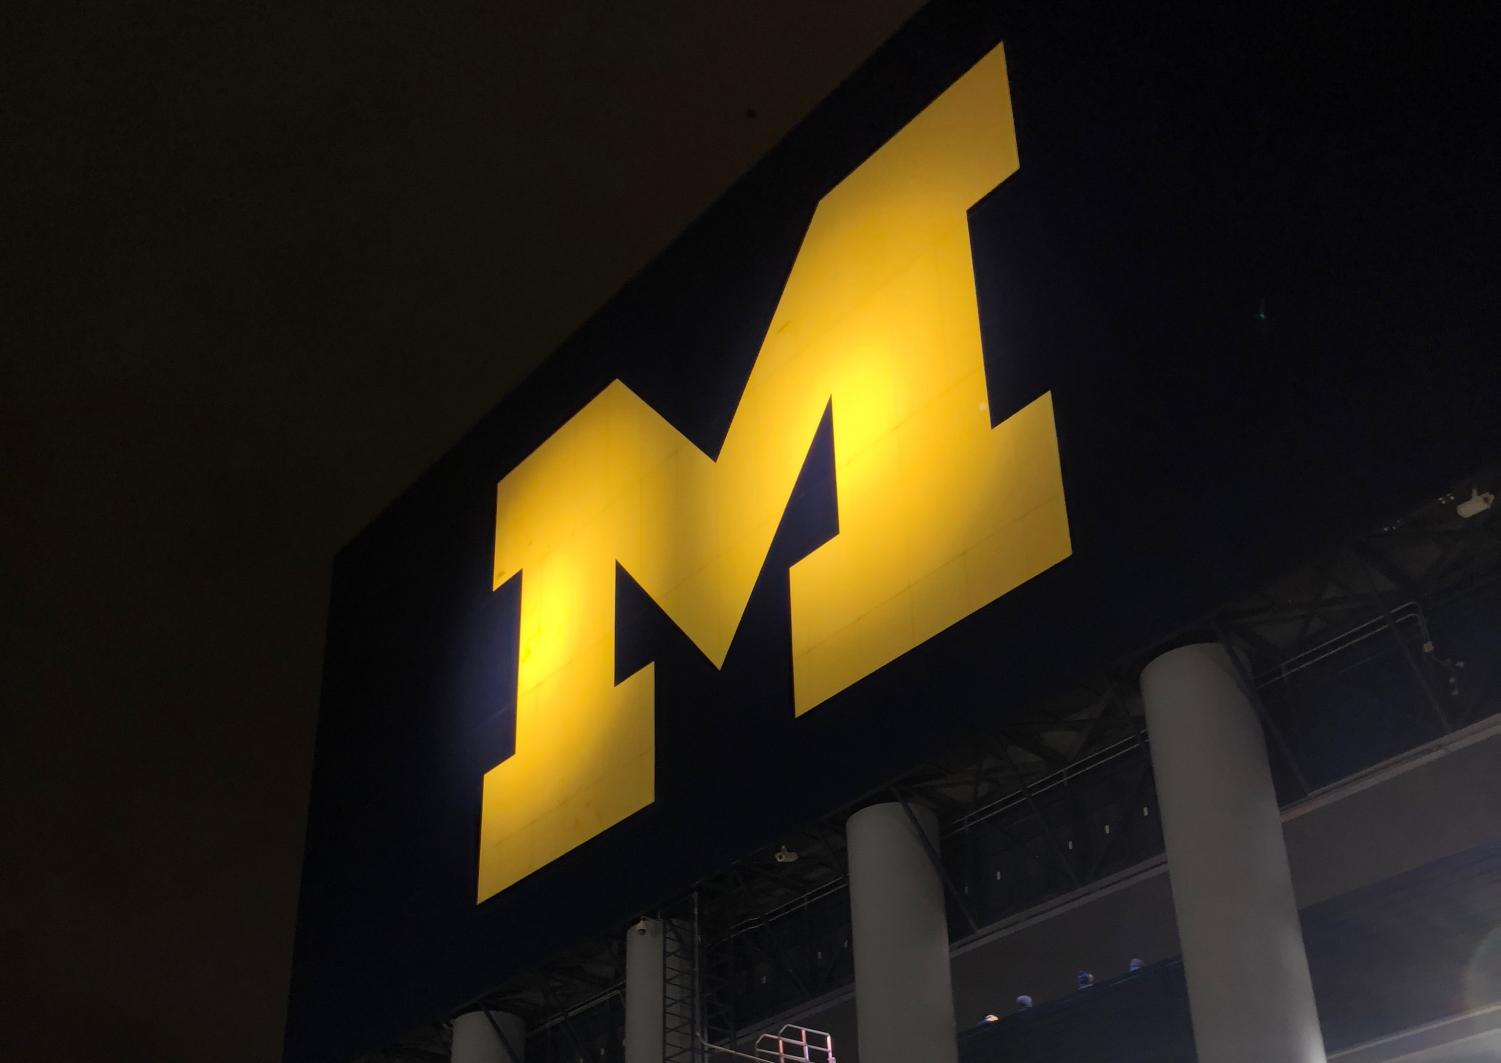 The back of a scoreboard at The Big House at the University of Michigan shines for pedestrians on Main Street in Ann Arbor.